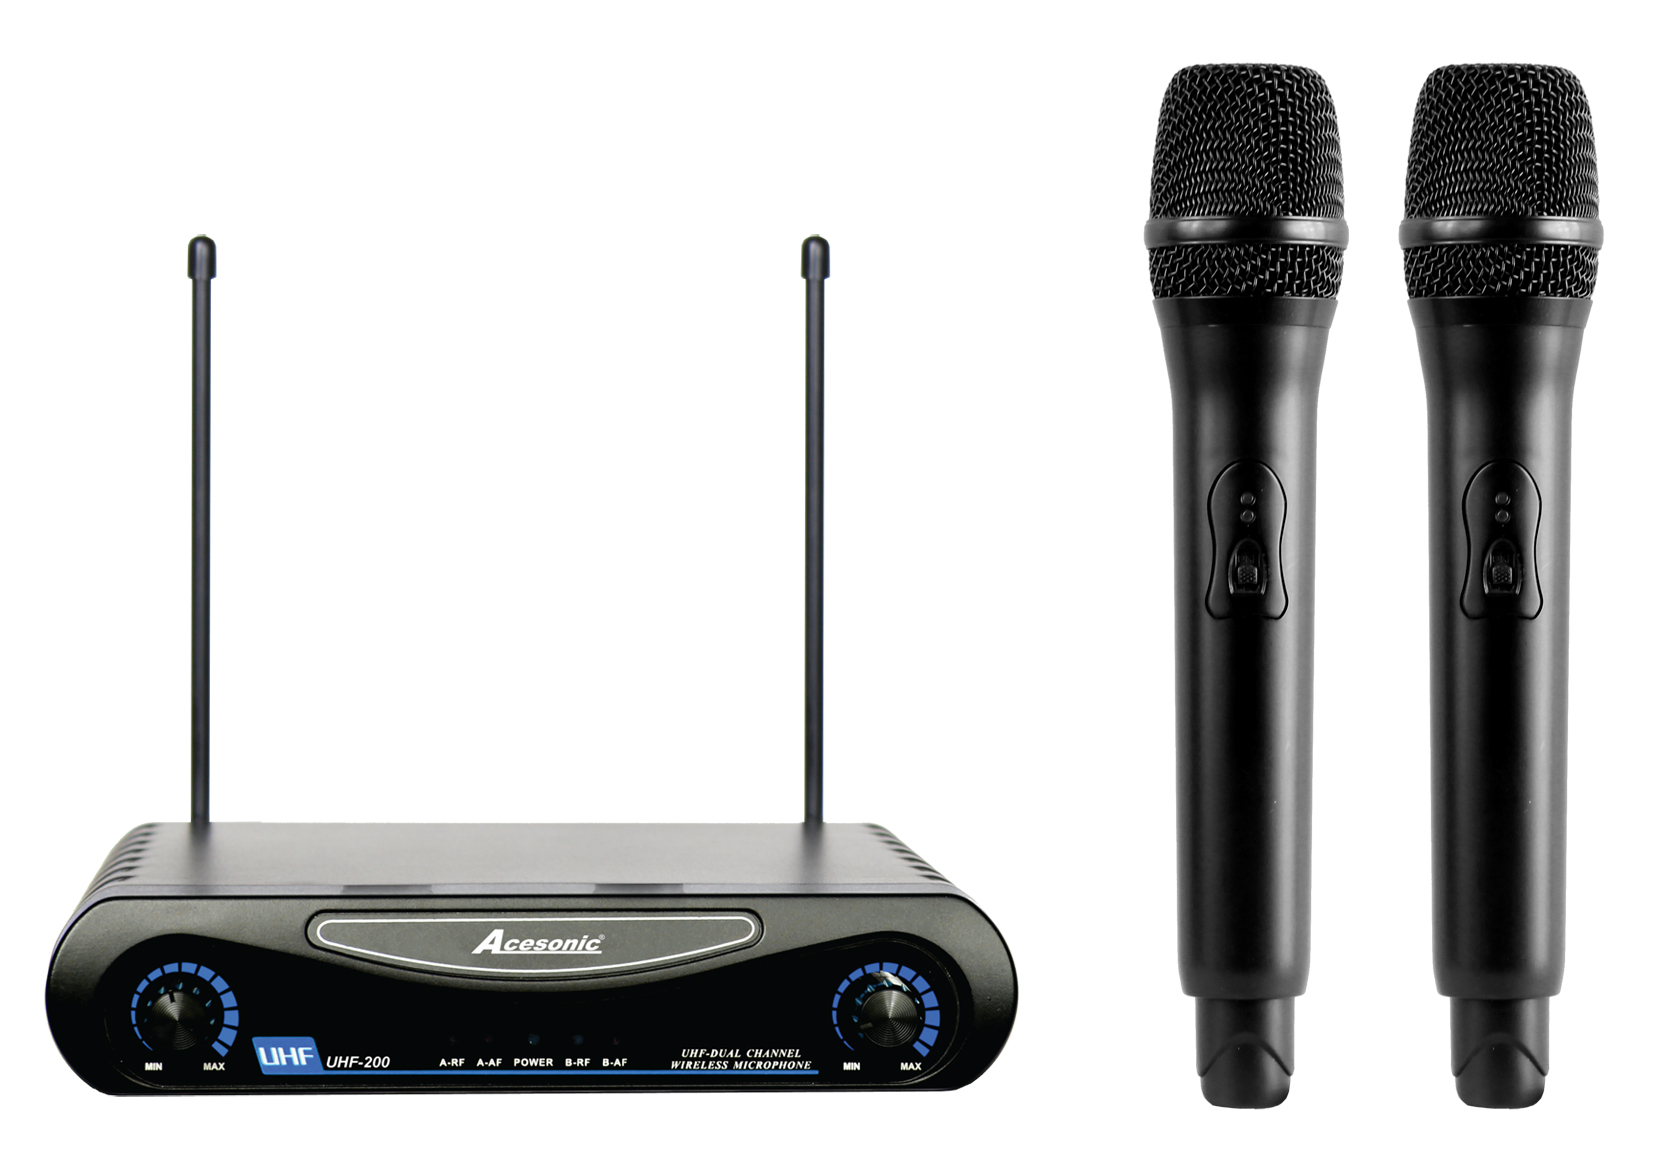 acesonic uhf 200 dual wireless microphone system. Black Bedroom Furniture Sets. Home Design Ideas